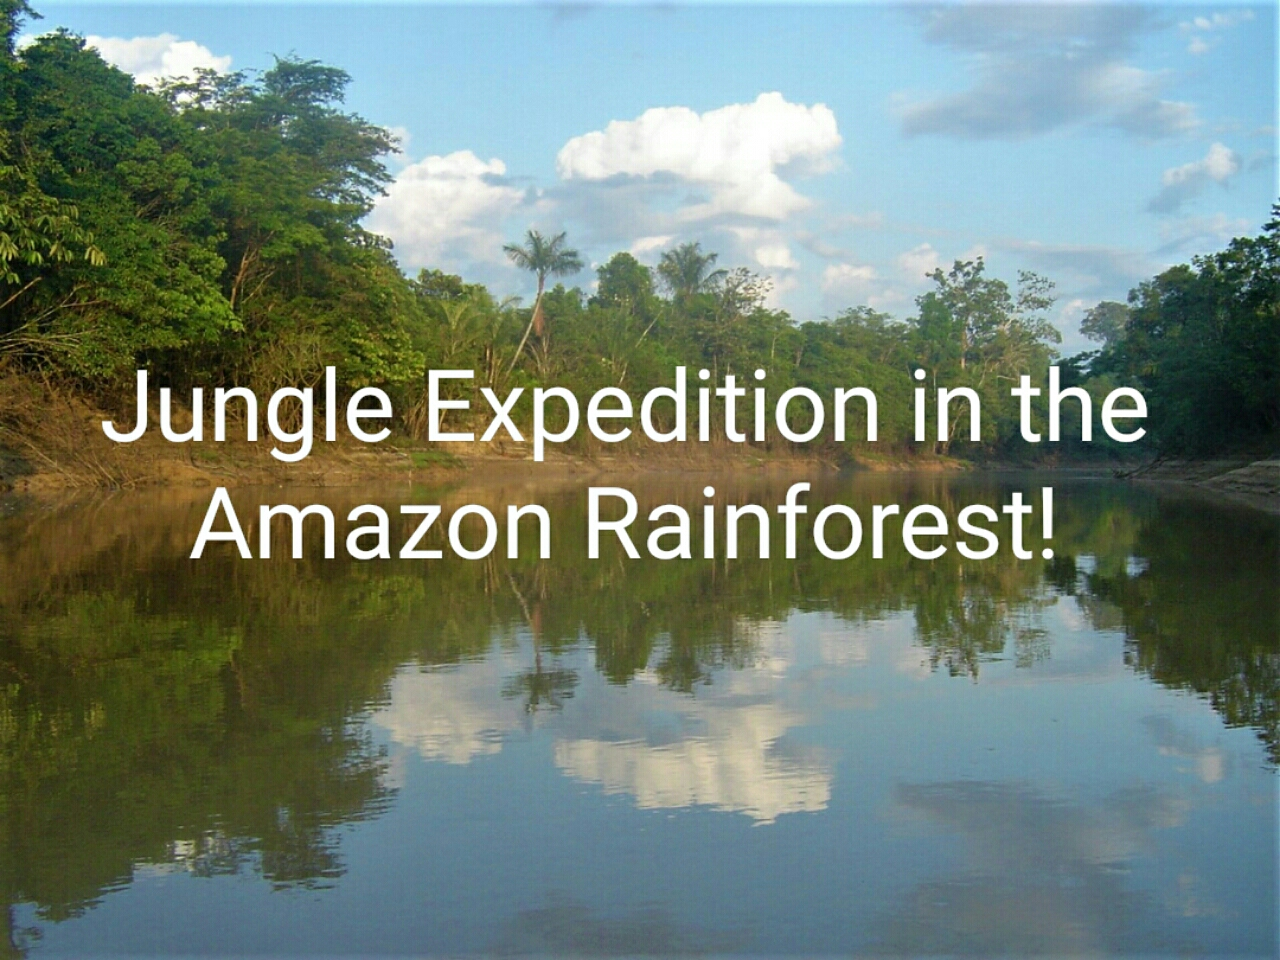 Jungle Expedition in the Amazon Rainforest!